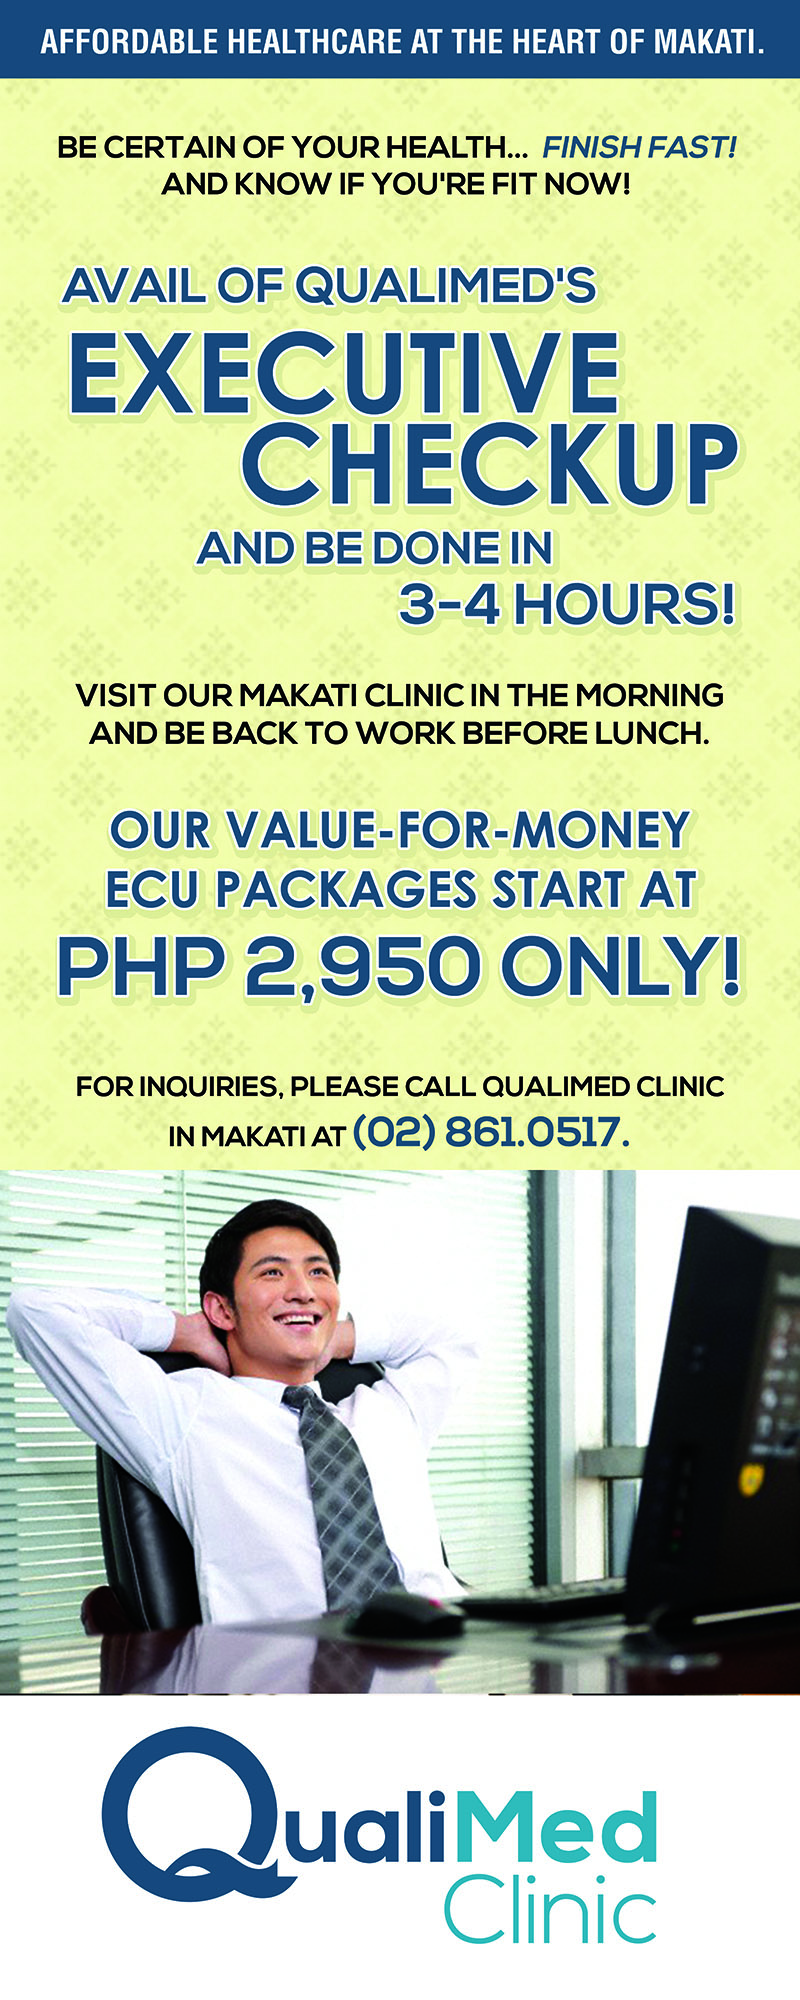 QualiMed Executive Checkup - QualiMed Clinic (Makati)